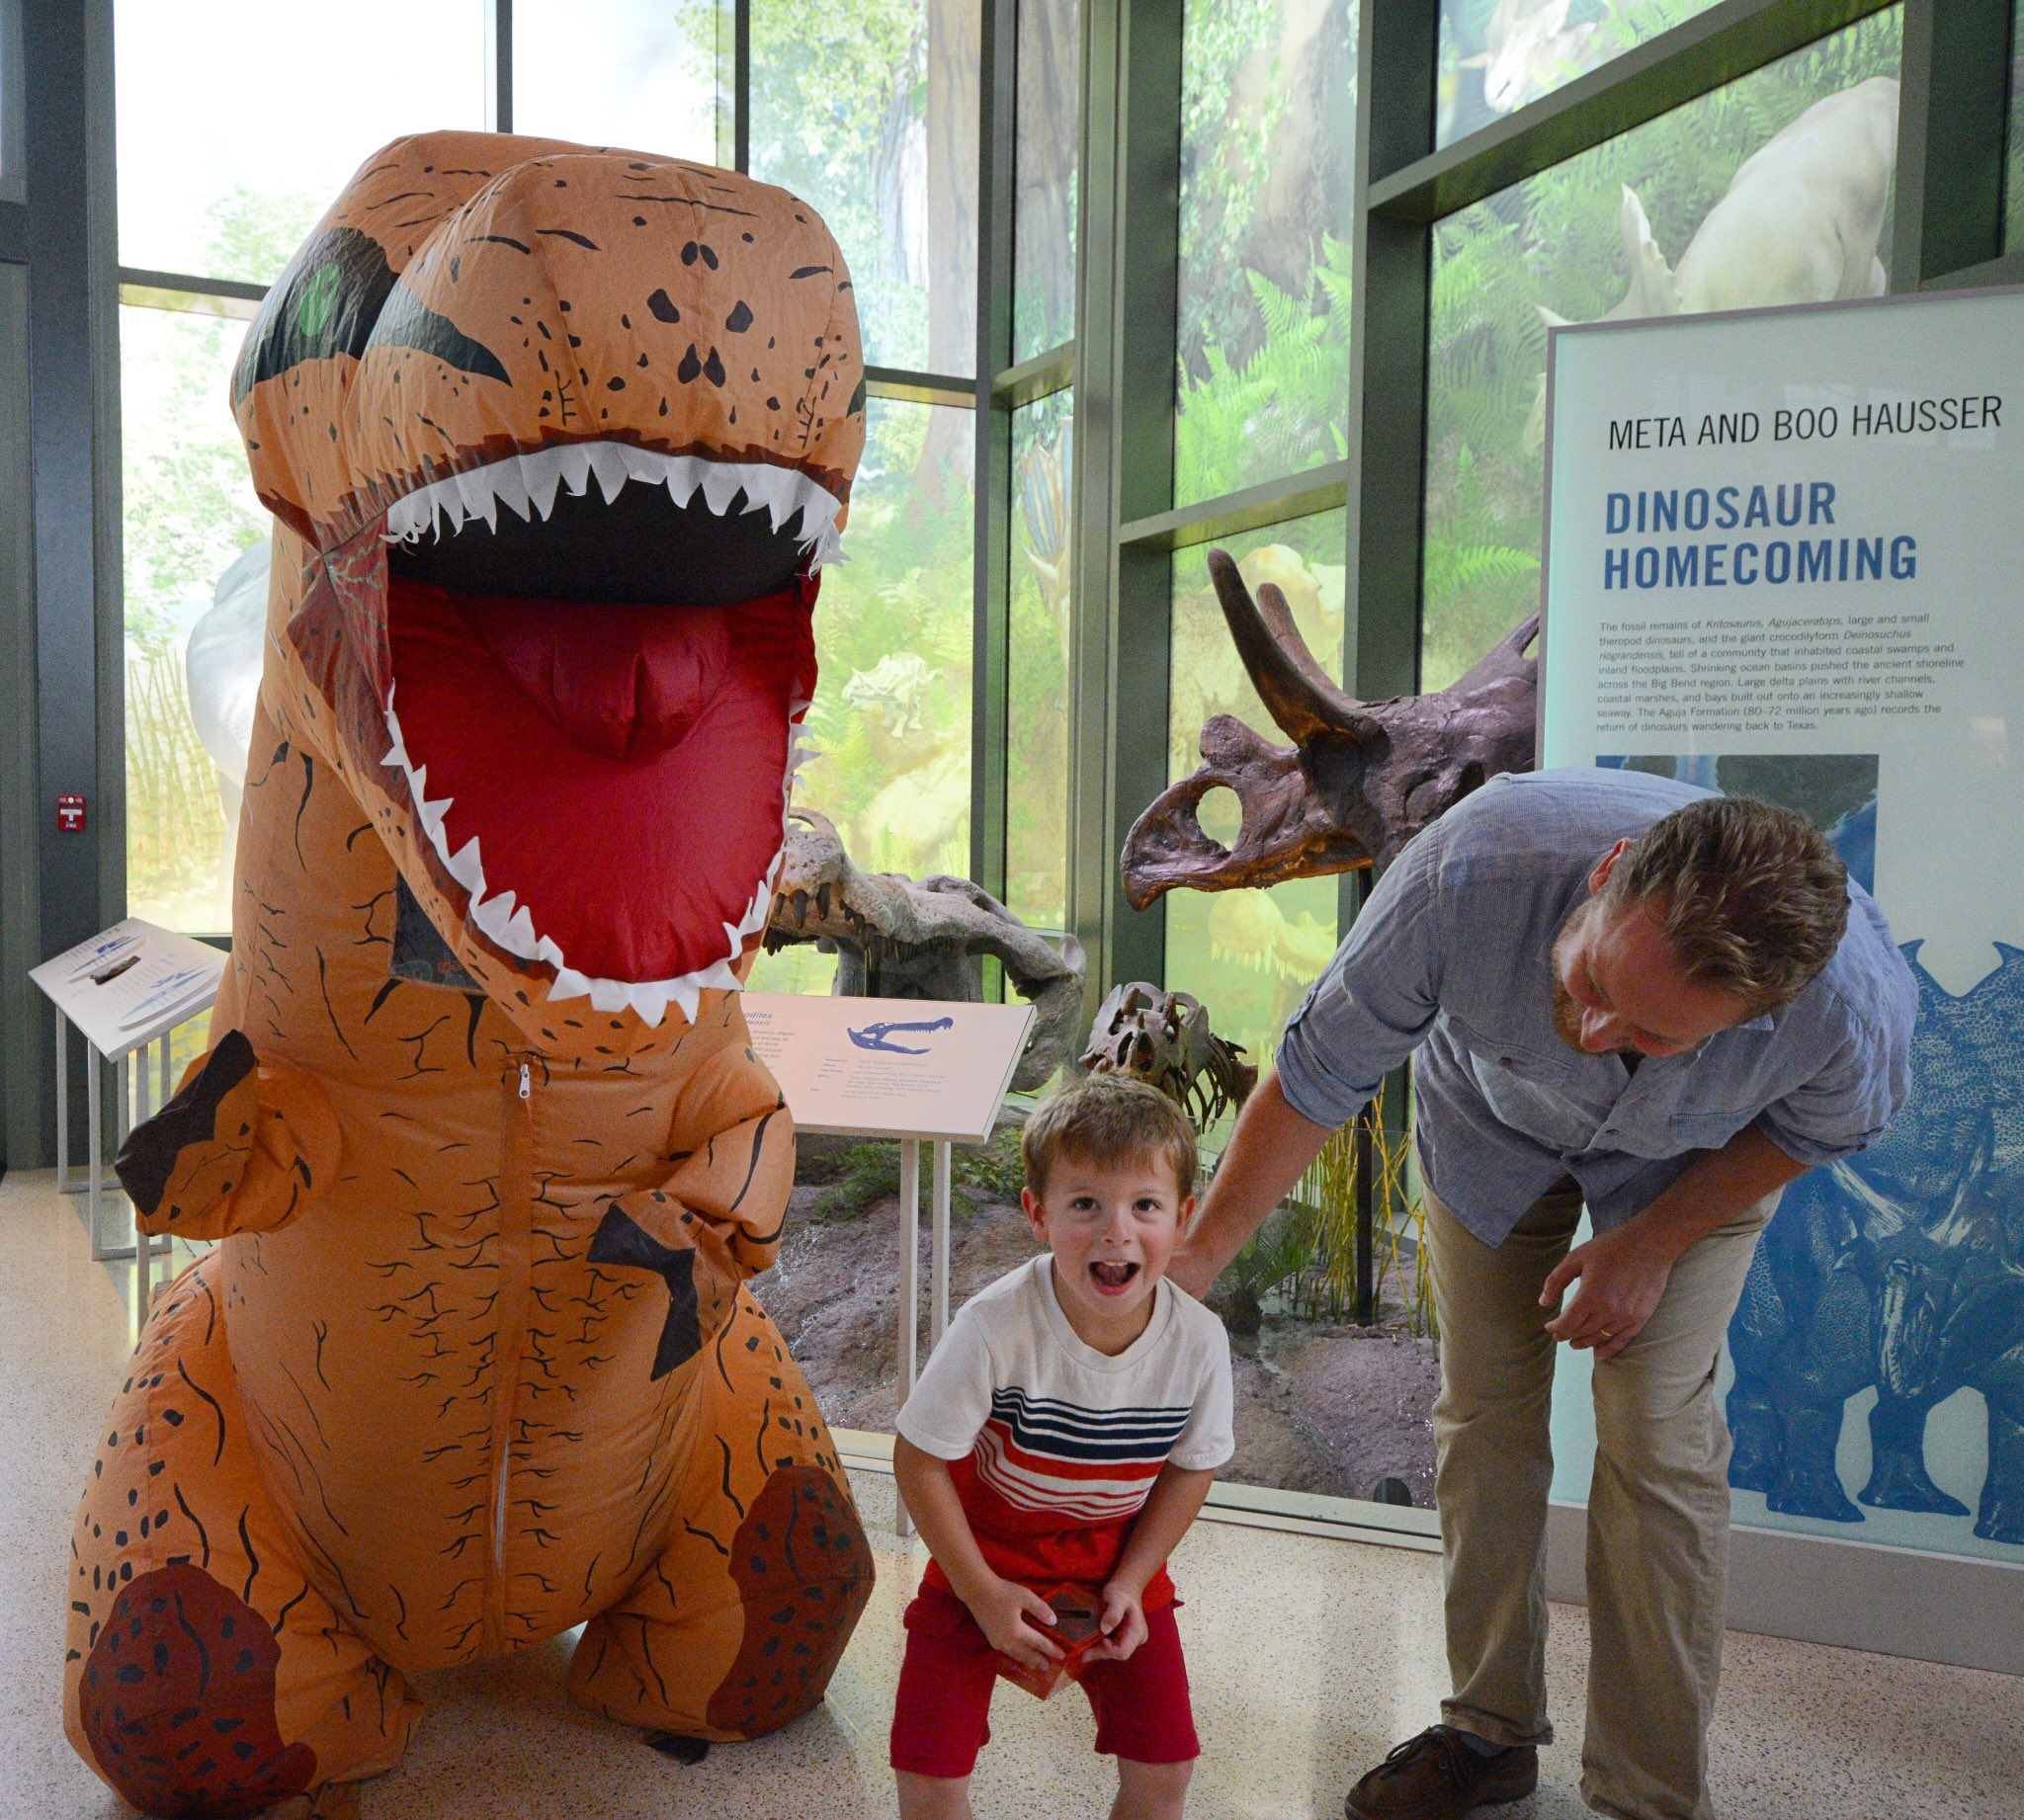 Witte Museum on Twitter: